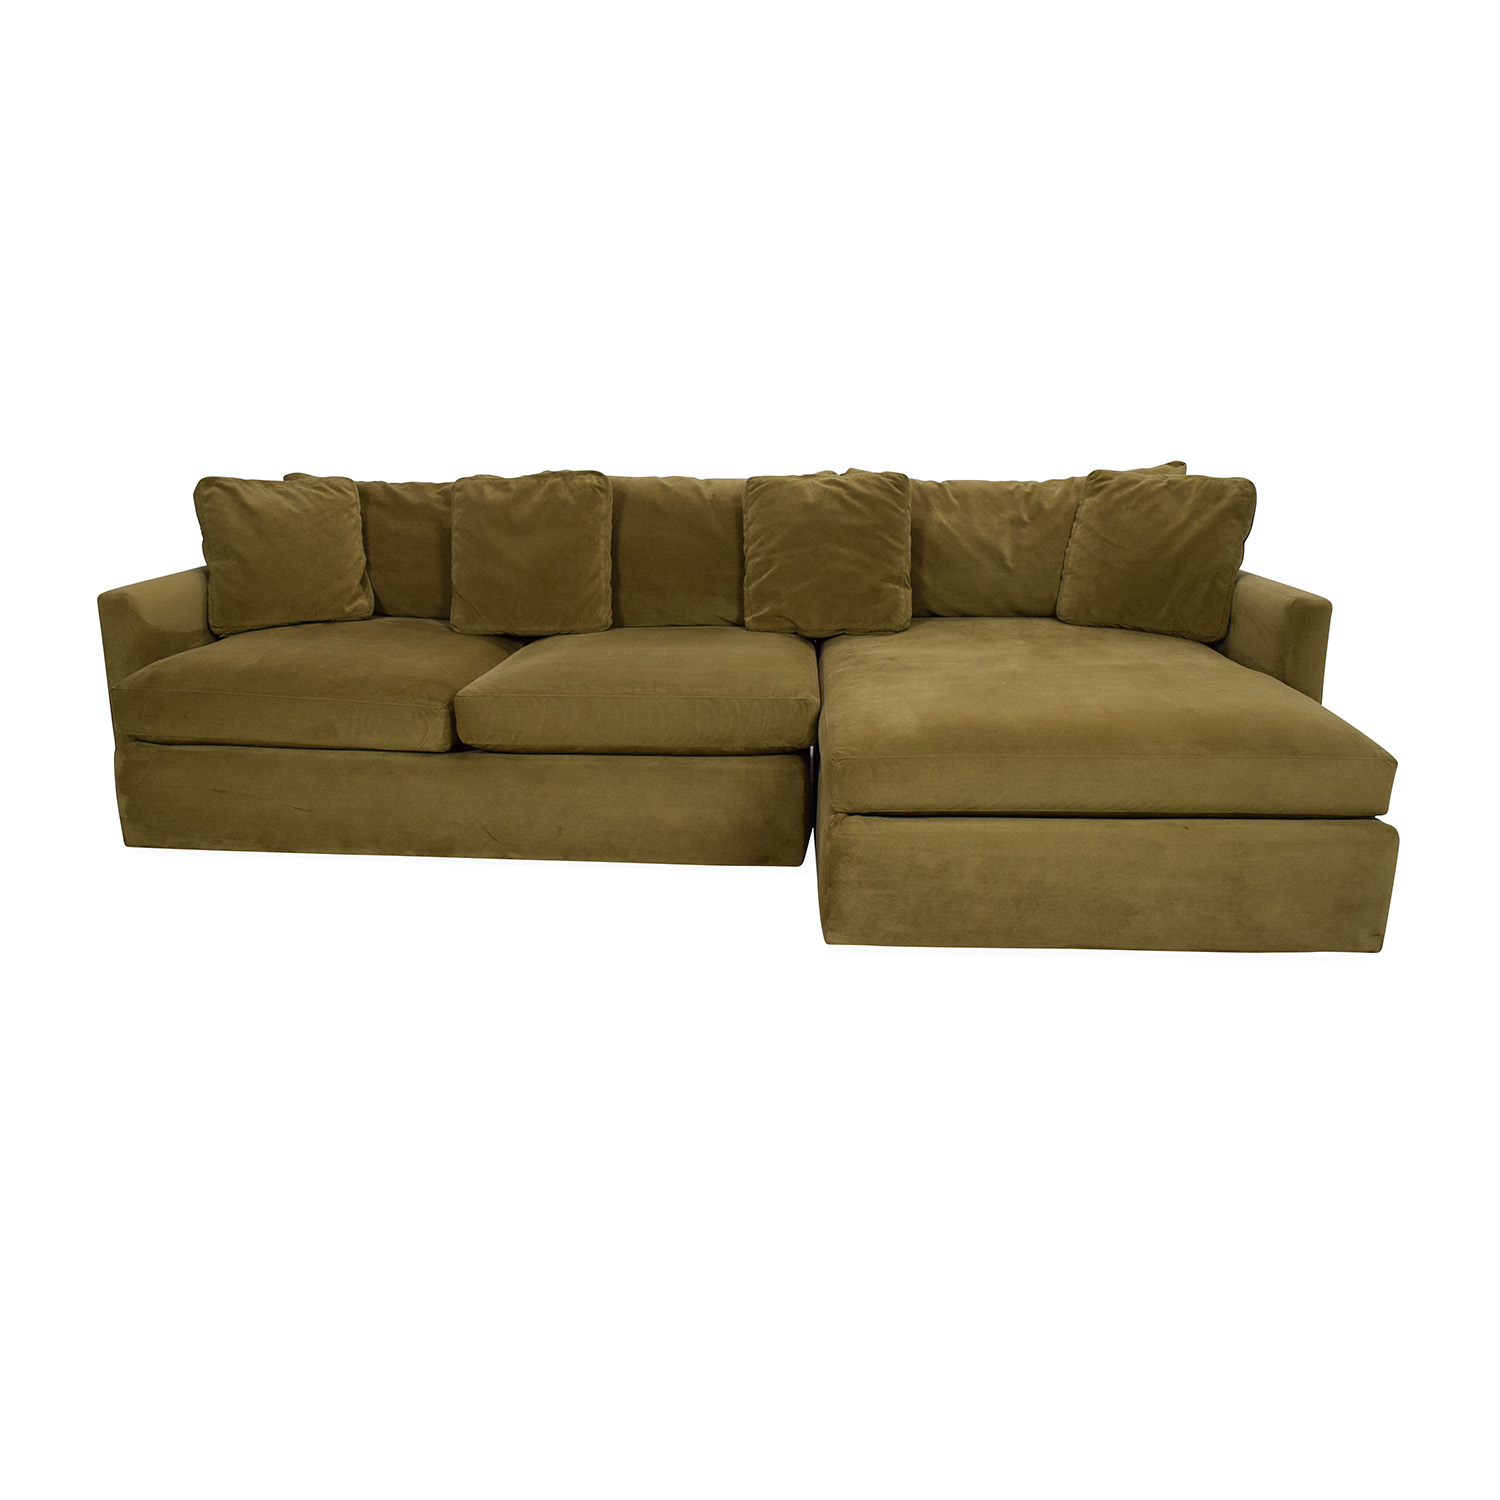 shop Crate and Barrel Lounge II Sectional Sofa Crate and Barrel Sofas